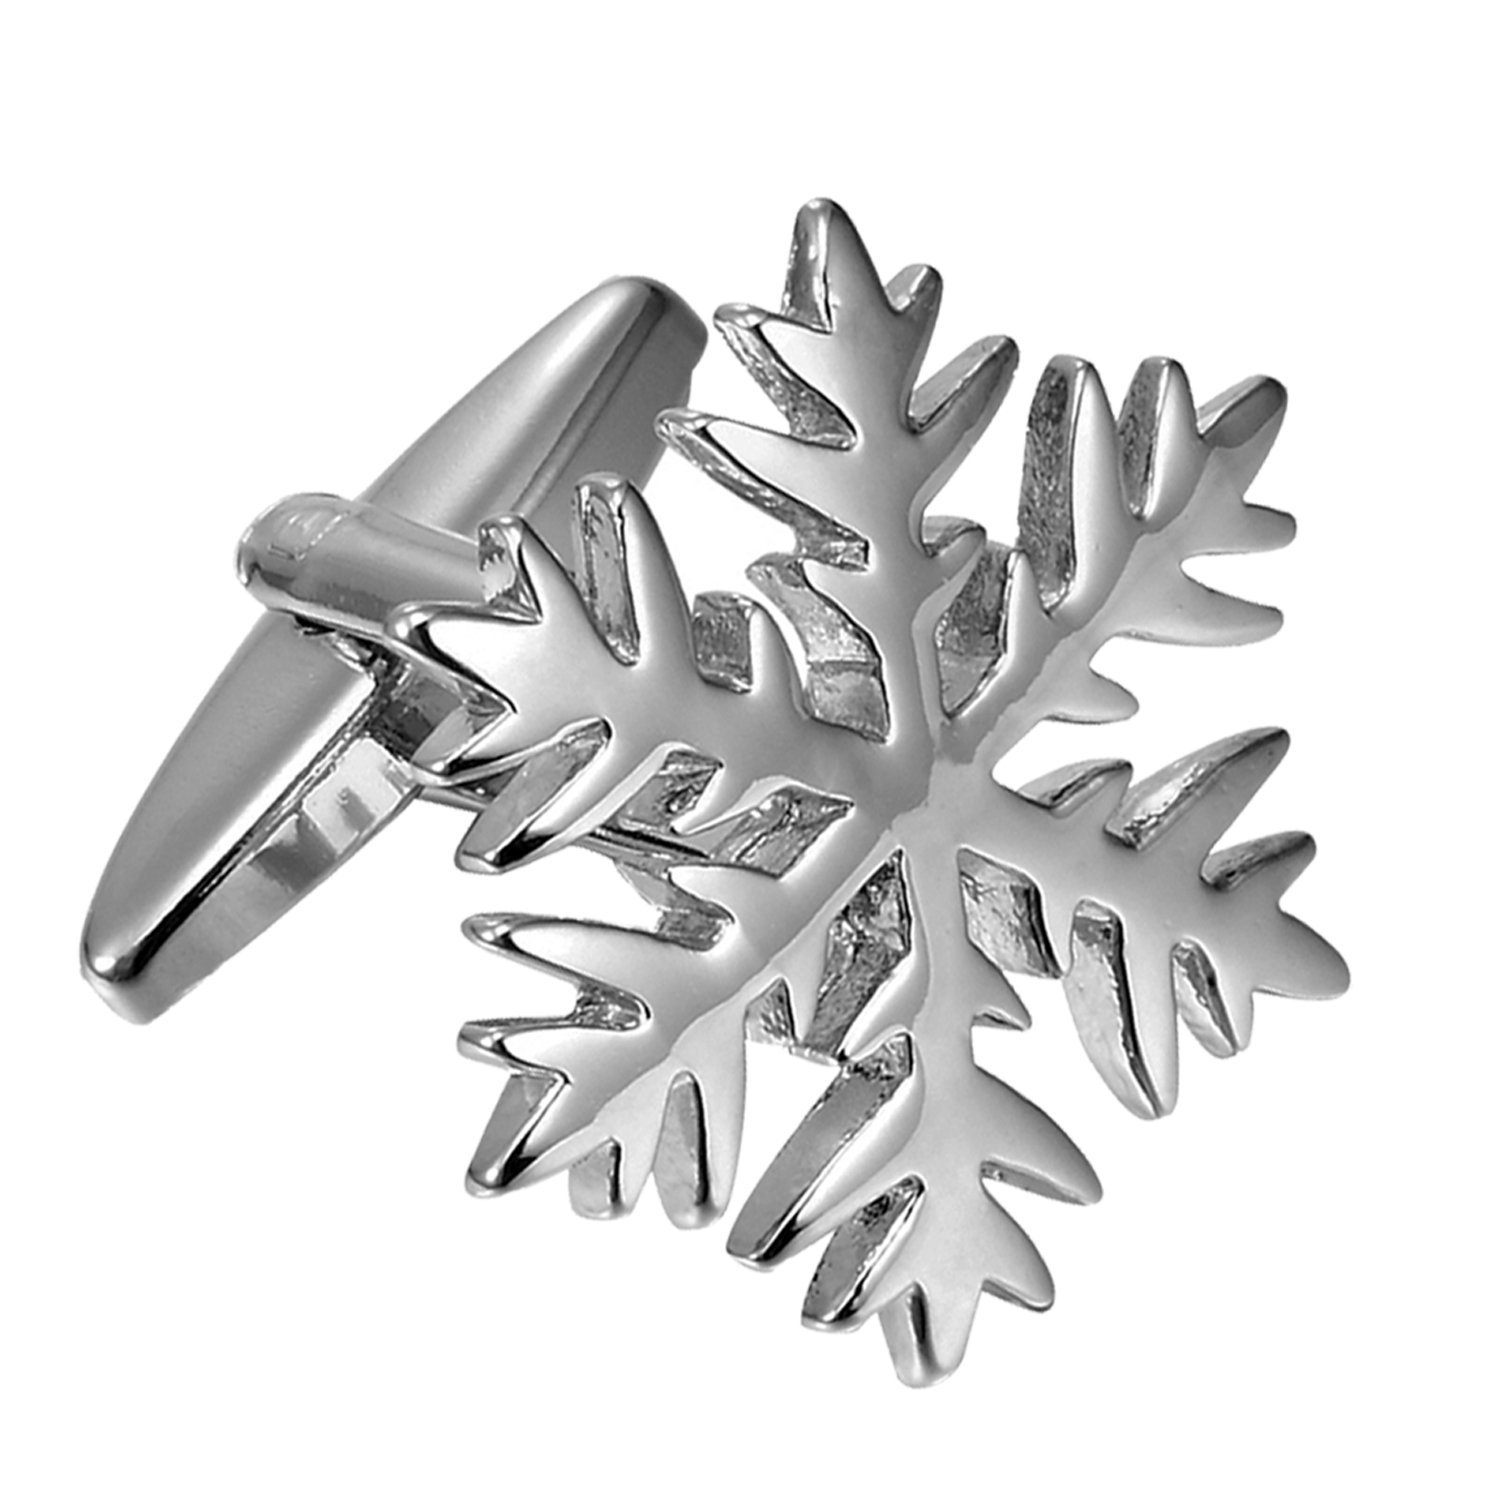 Urban Jewelry Unique Christmas Snow Snowflakes Stainless Steel Cufflinks for Men (Silver) AC1291 U